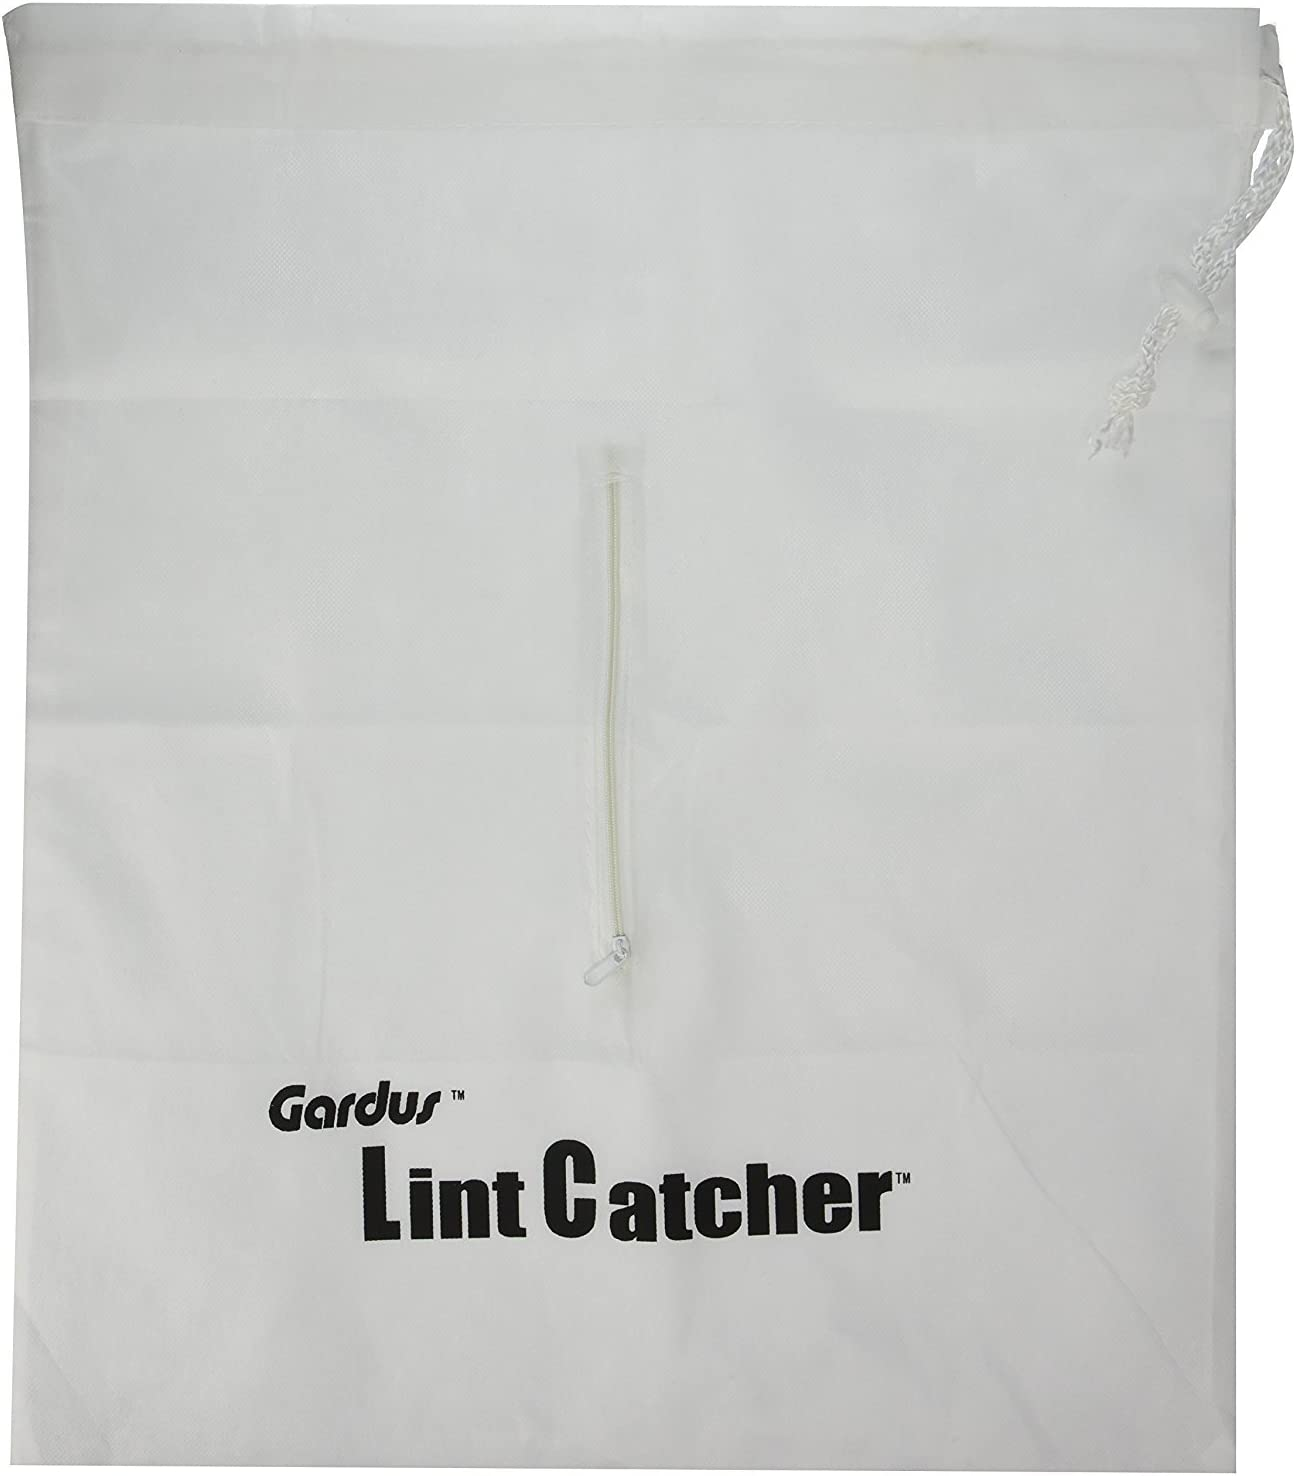 B000G9WK2G Gardus R4203613 LintEater LintCatcher, to Easily Capture Loosened Lint from Dryer Vent 719pVg2HexL